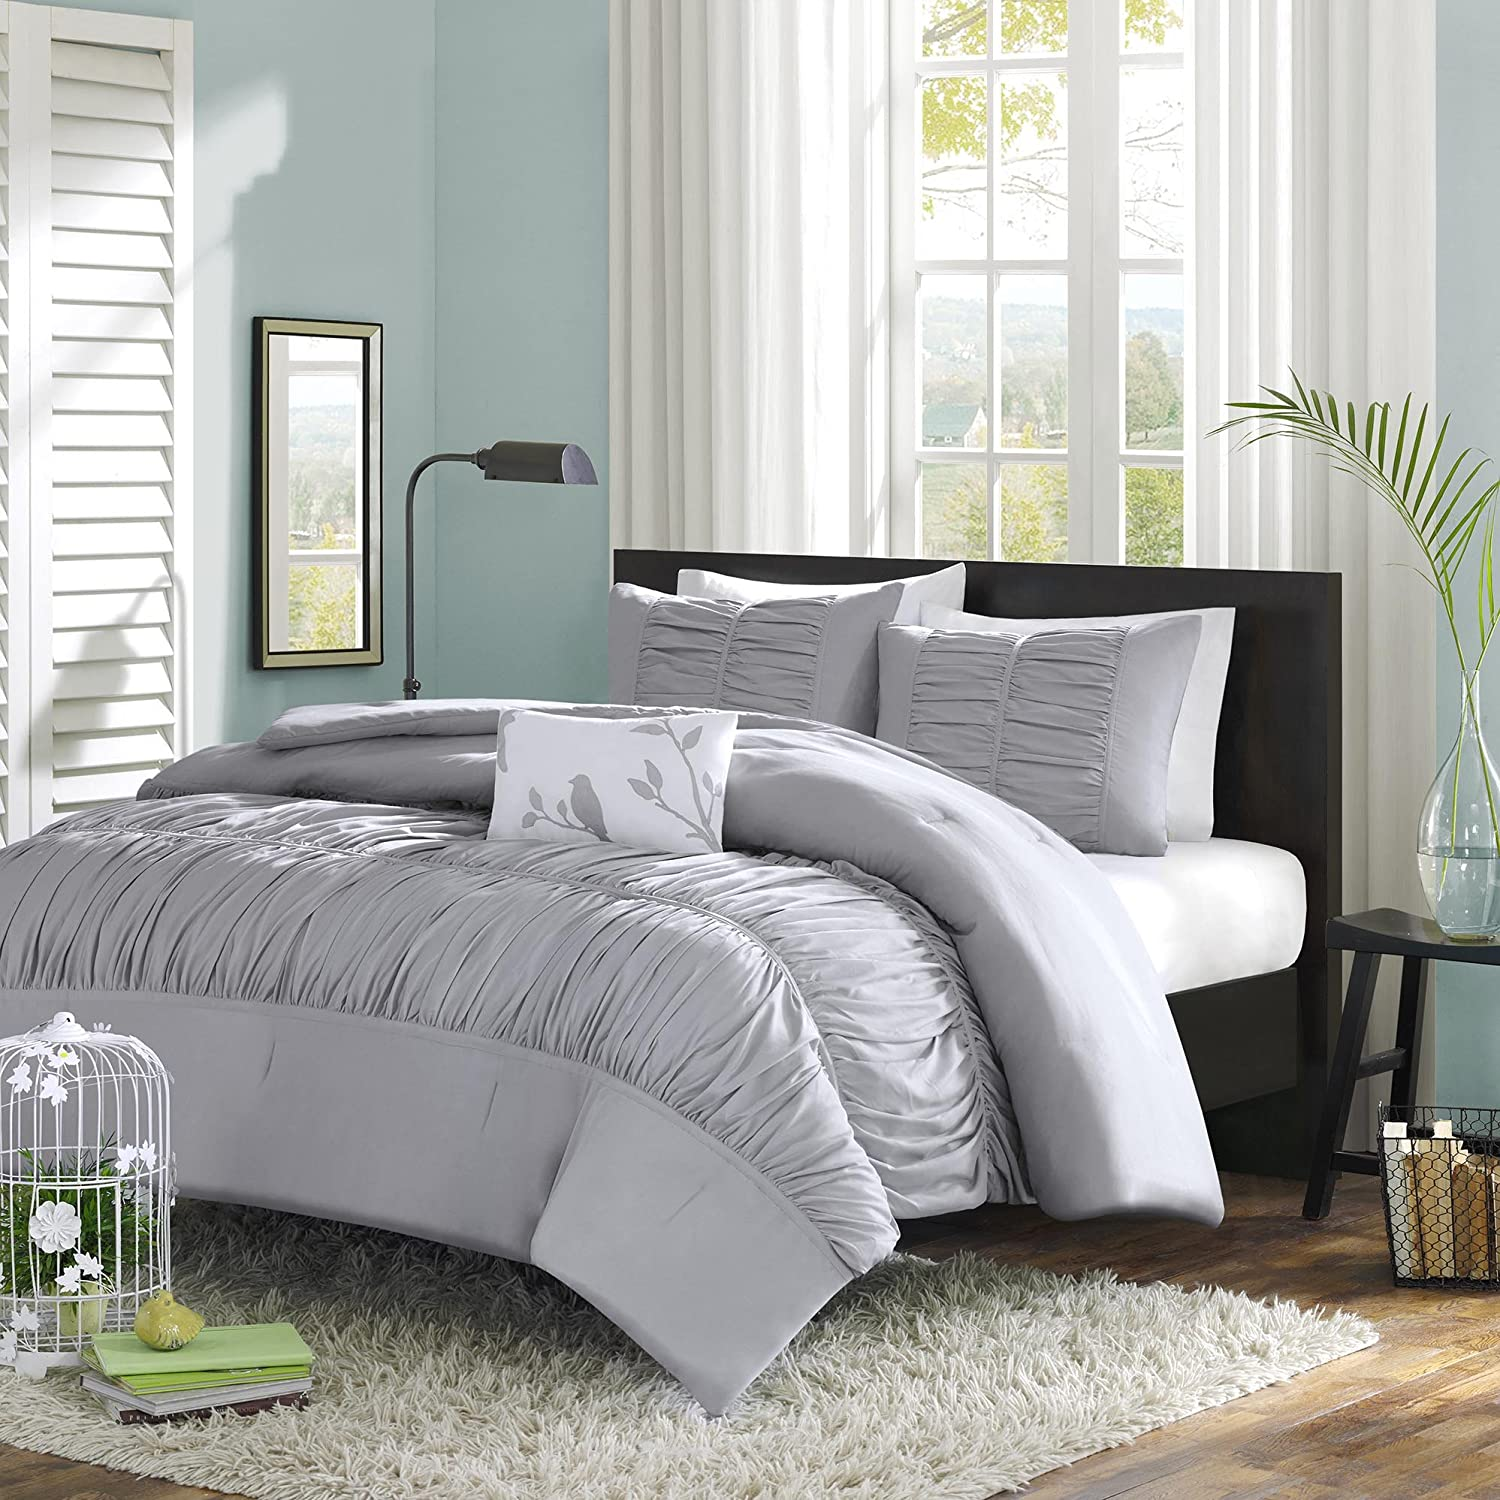 decorating sets designing to style images ideas make and home great full comforter of amazing with grey